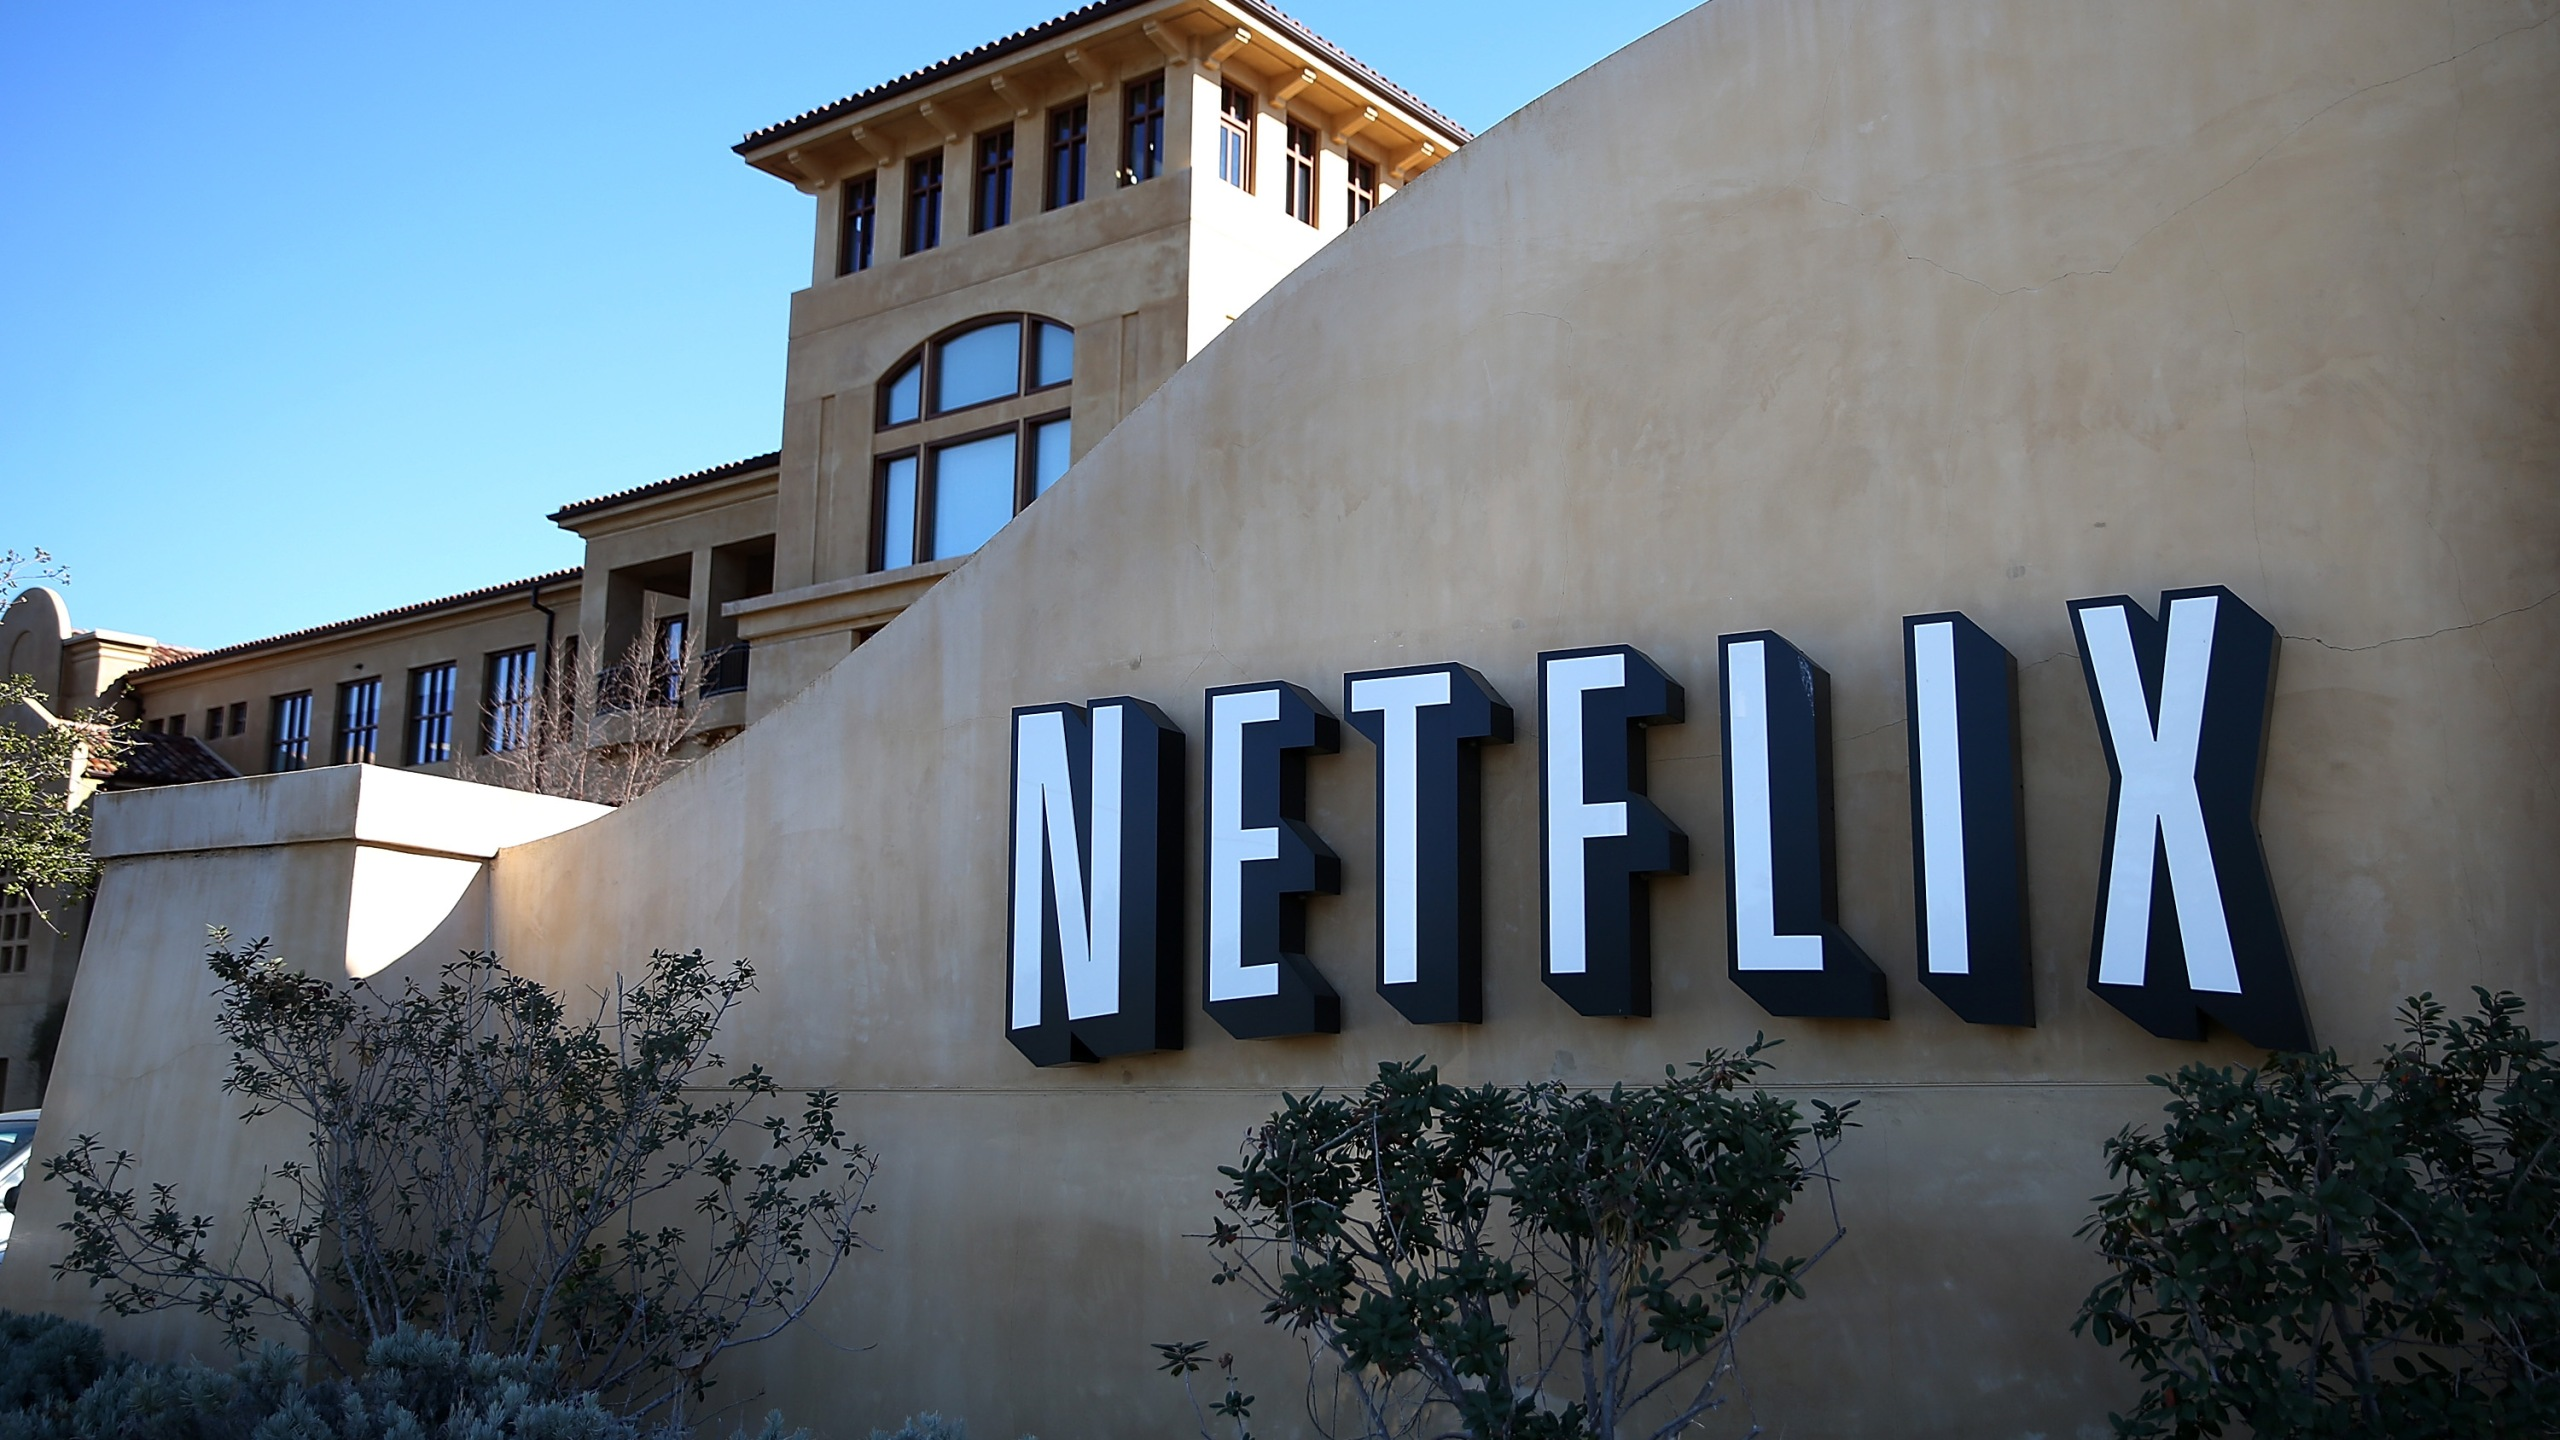 Netflix headquarters in Los Gatos are shown on Jan. 22, 2014. (Credit: Justin Sullivan/Getty Images)